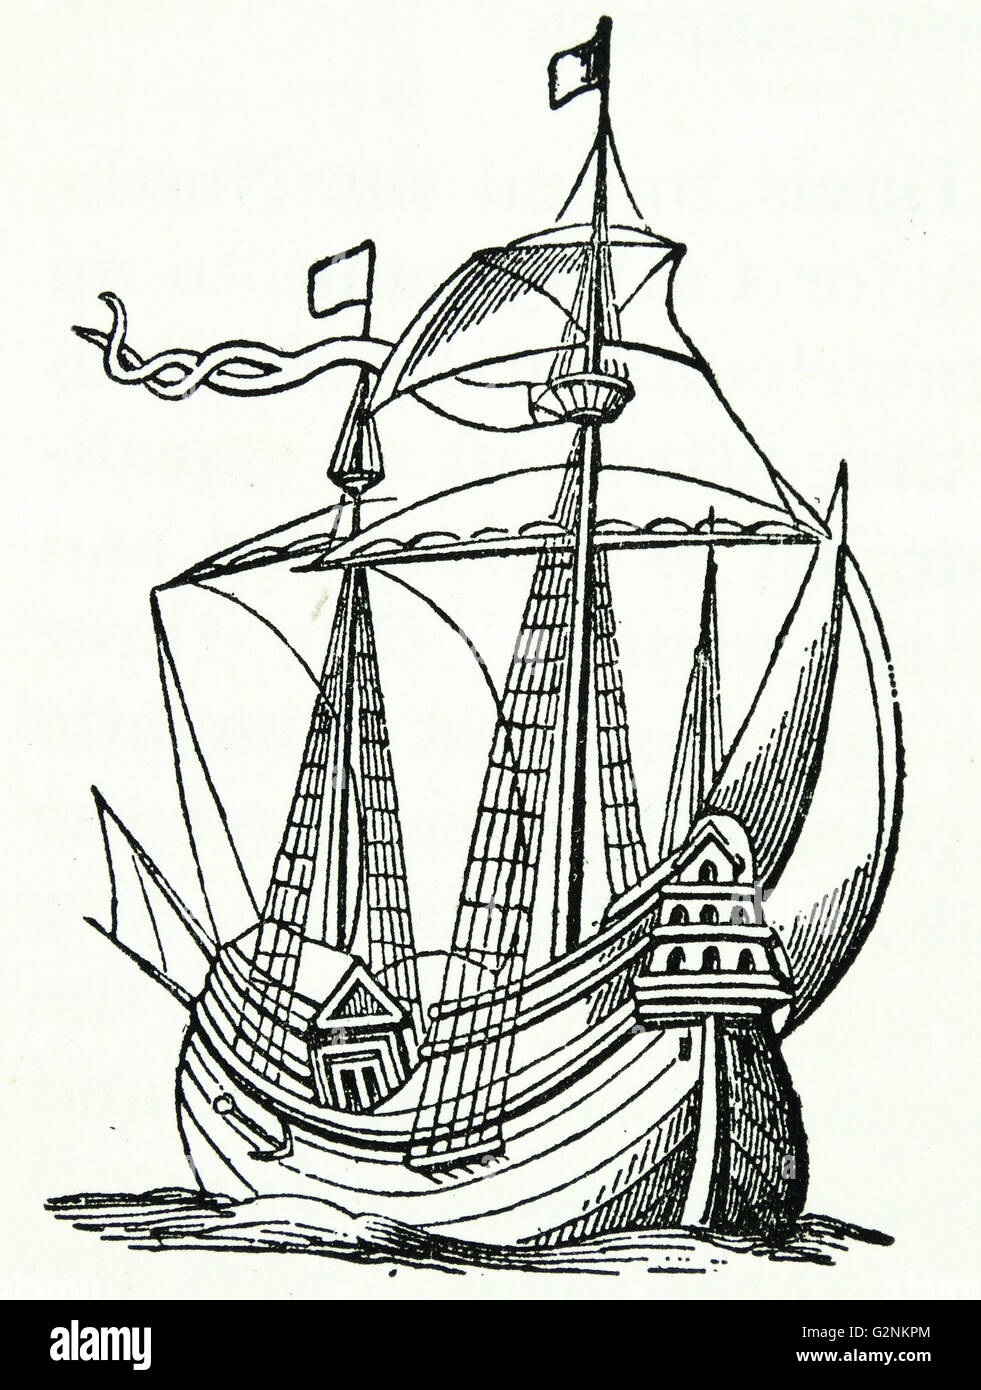 A ship of the late 16th century - Stock Image